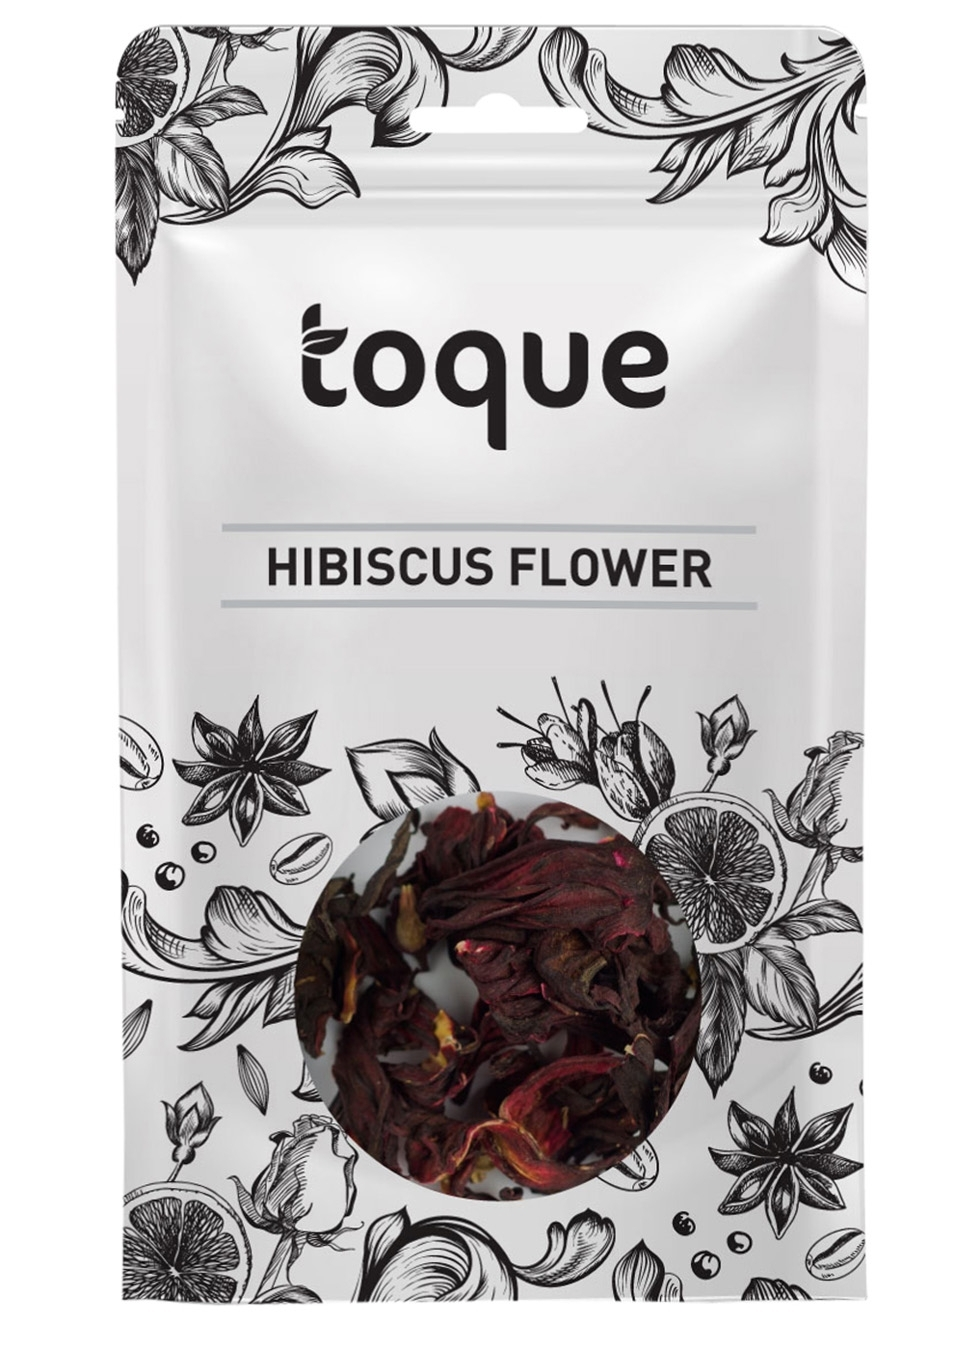 Toque Hibiscus Flower 19g Harvey Nichols